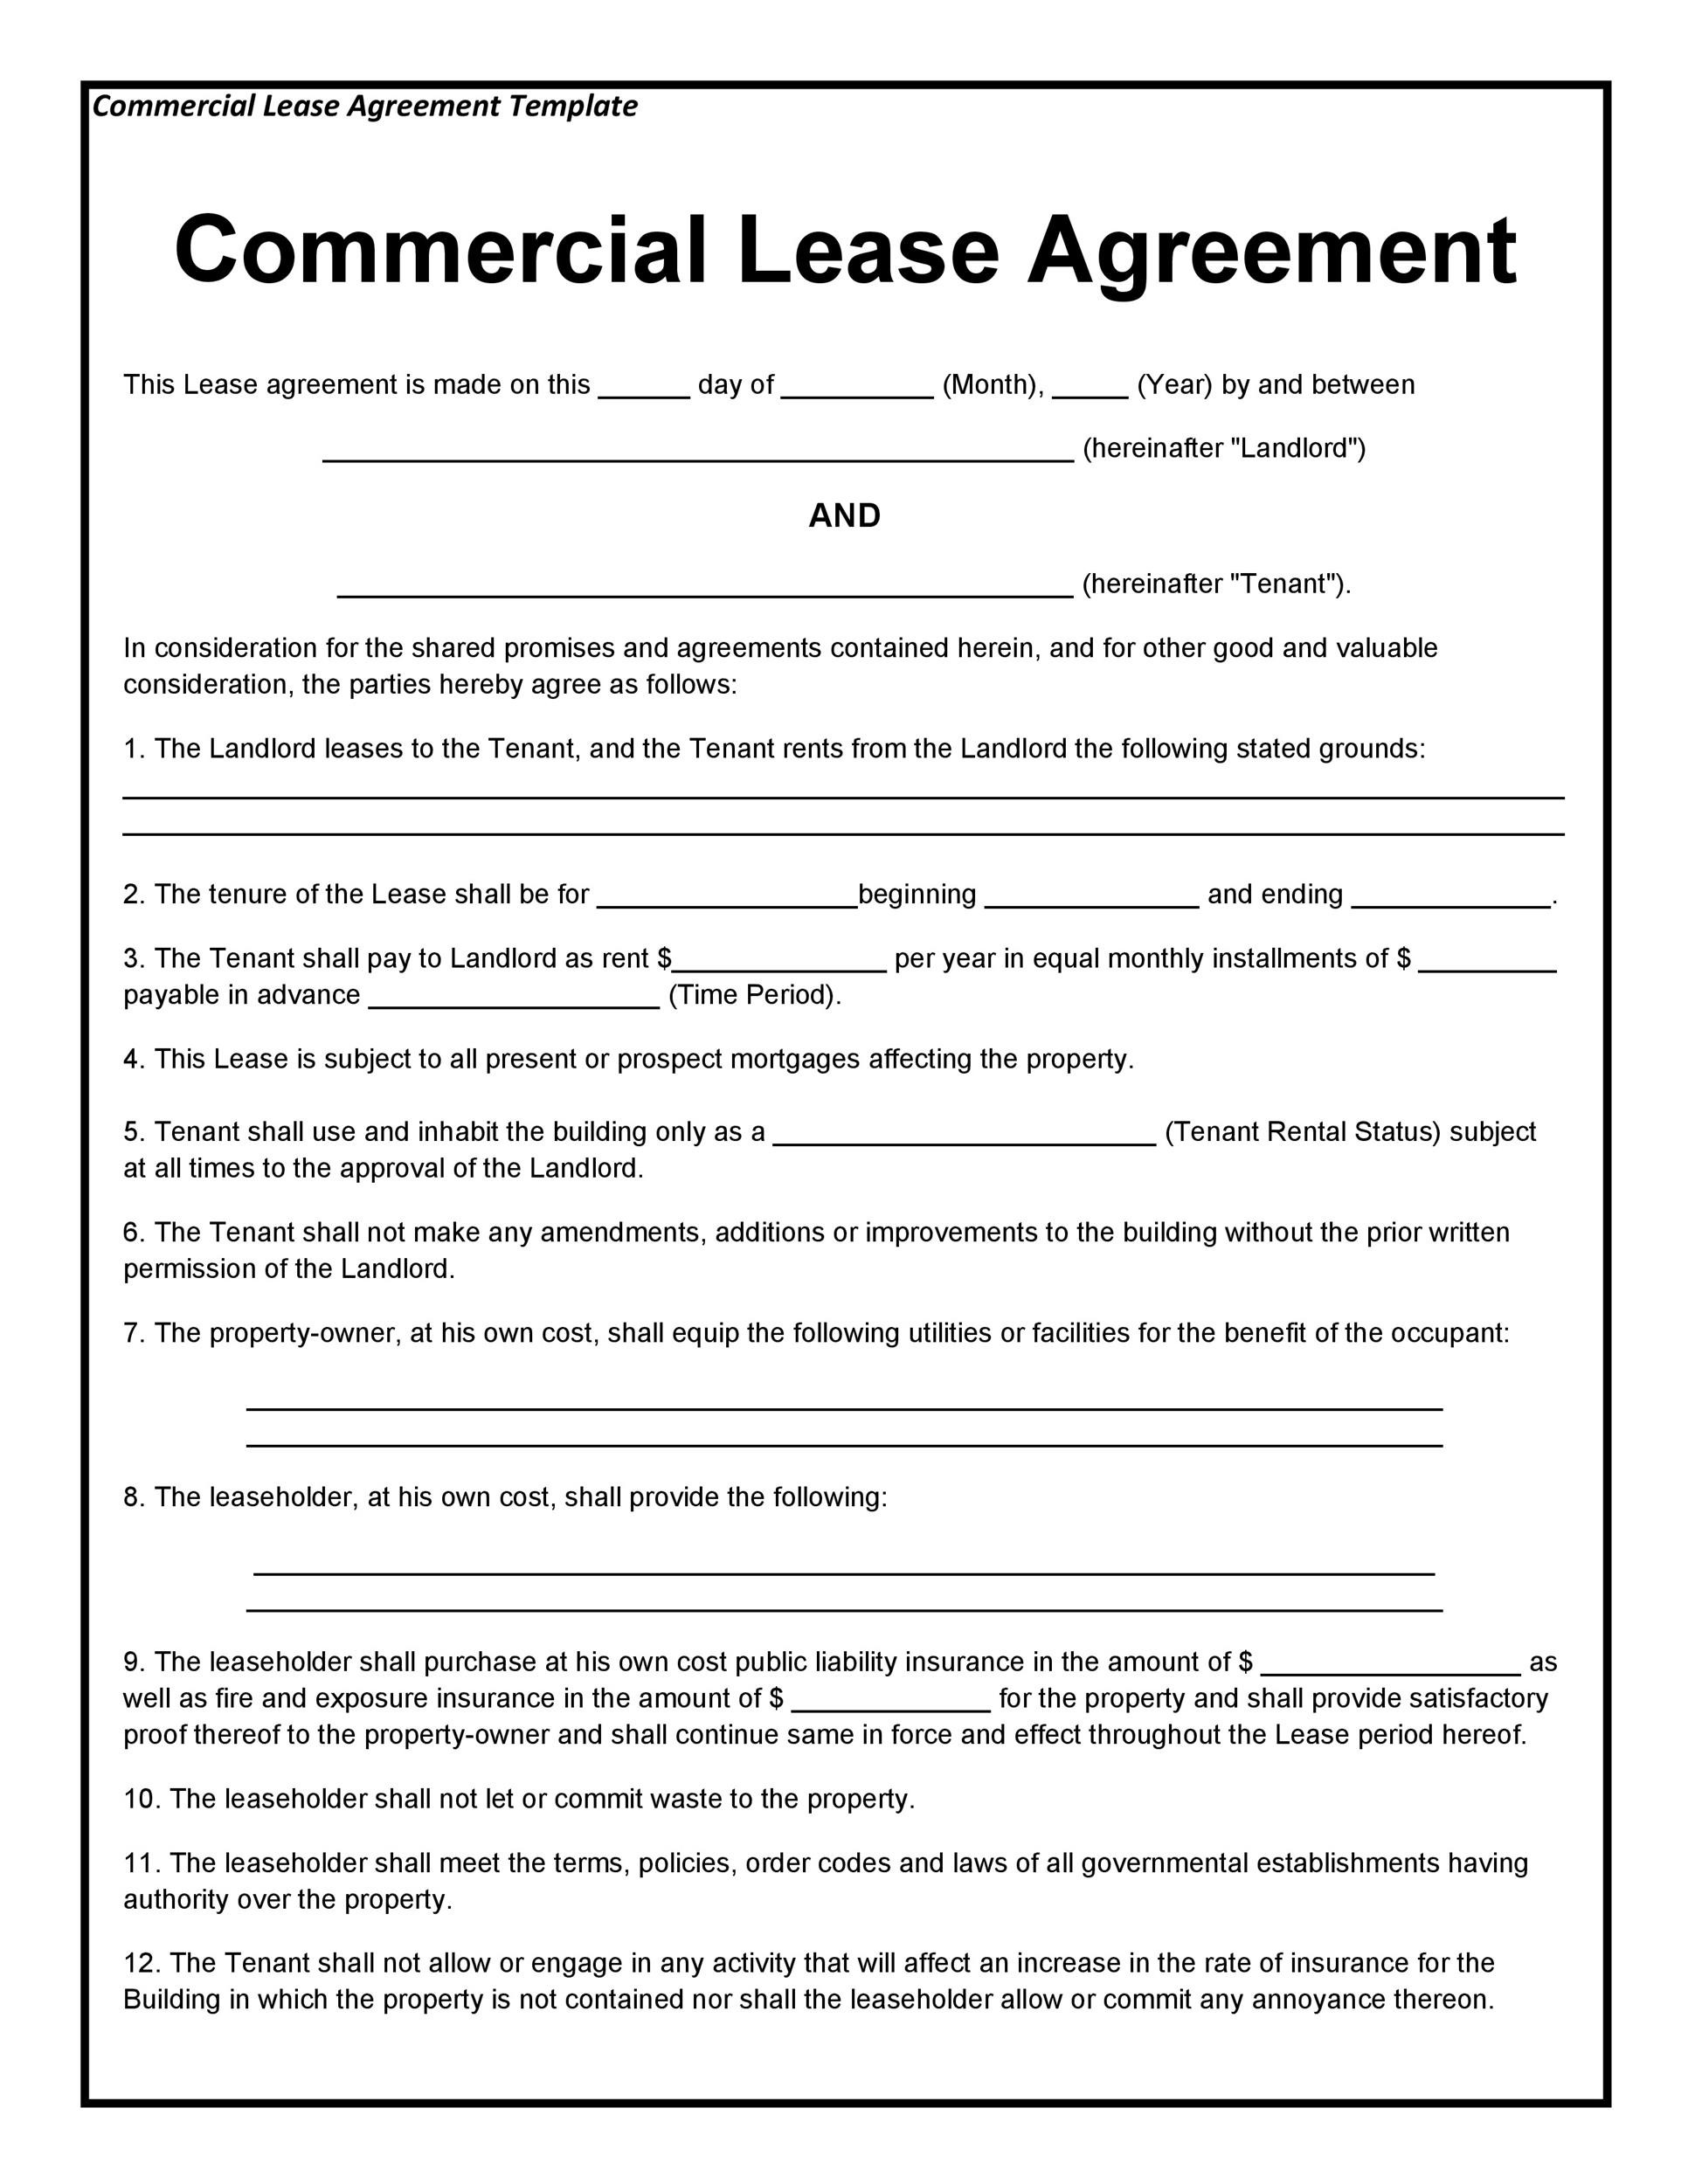 26 free commercial lease agreement templates template lab free commercial lease agreement template 04 accmission Image collections